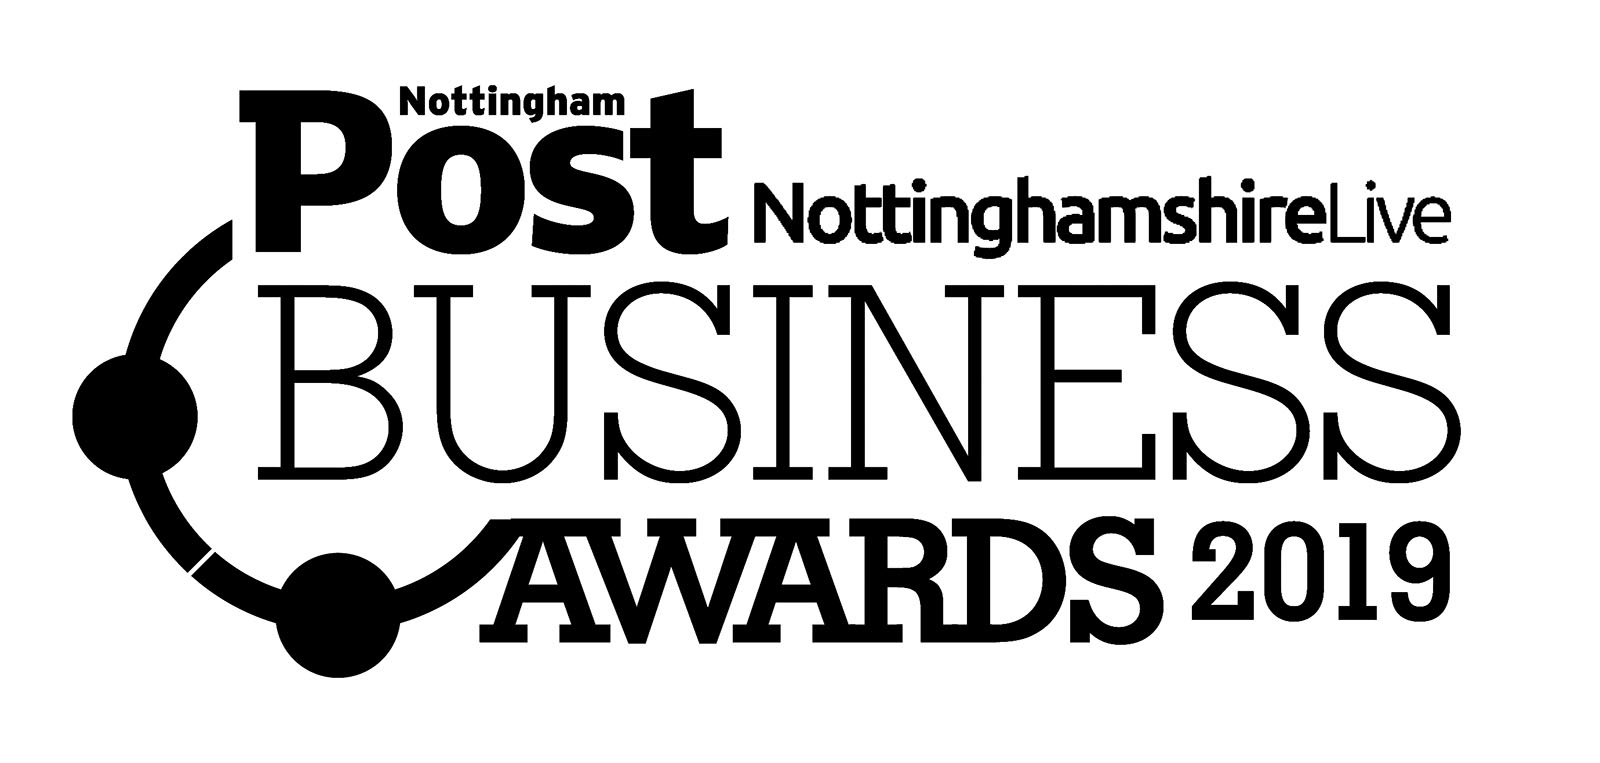 Nottingham Post Business Awards 2019 logo